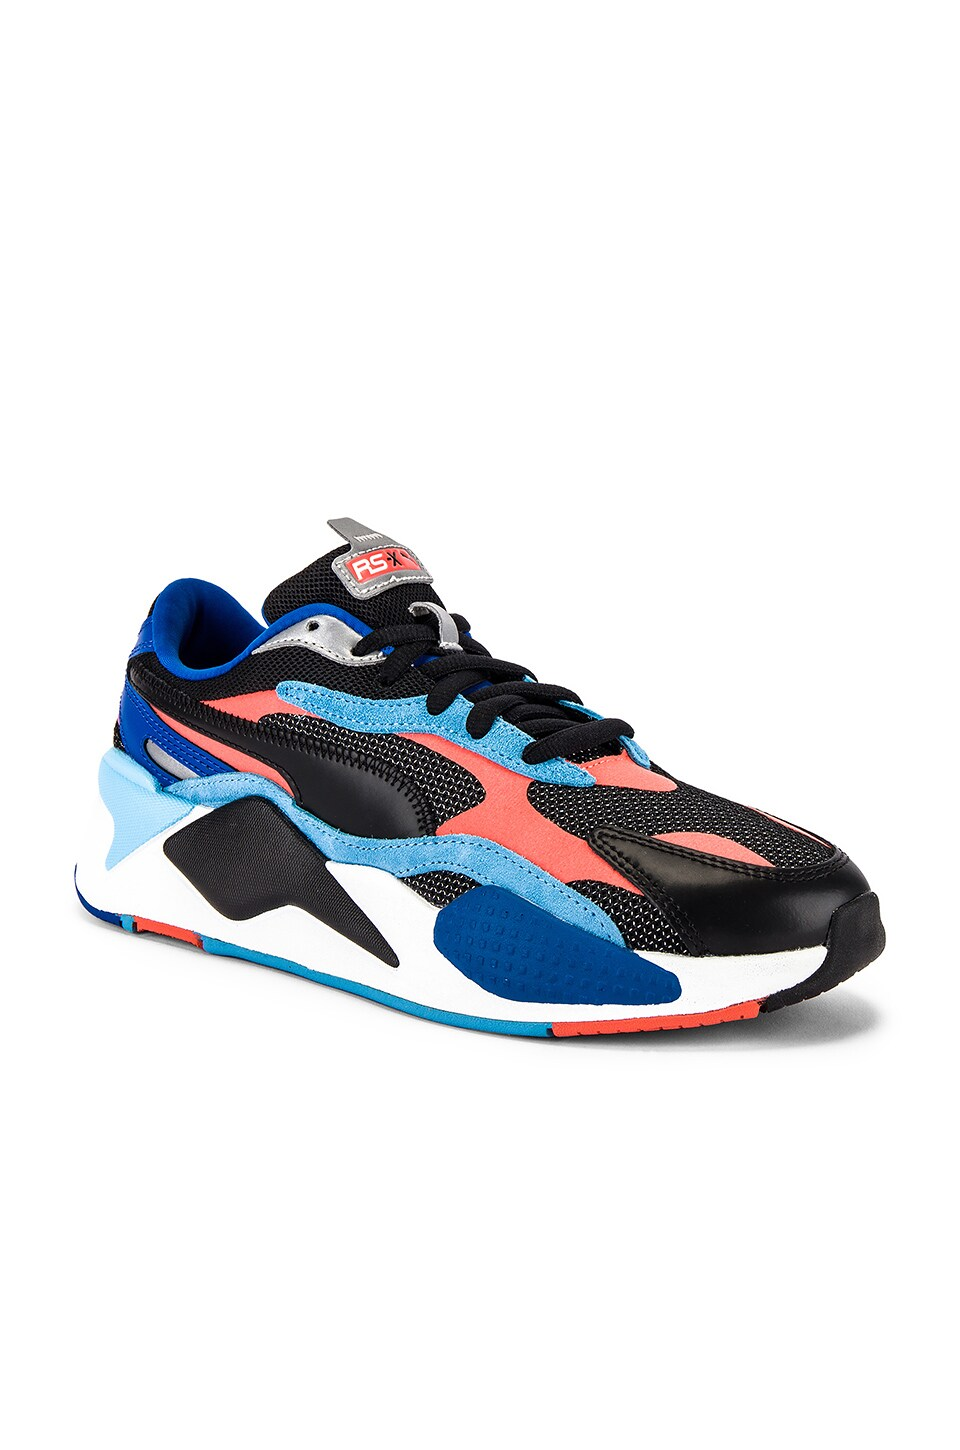 Puma Select RS-X3 Level Up Sneaker in Puma Black & Hot Coral